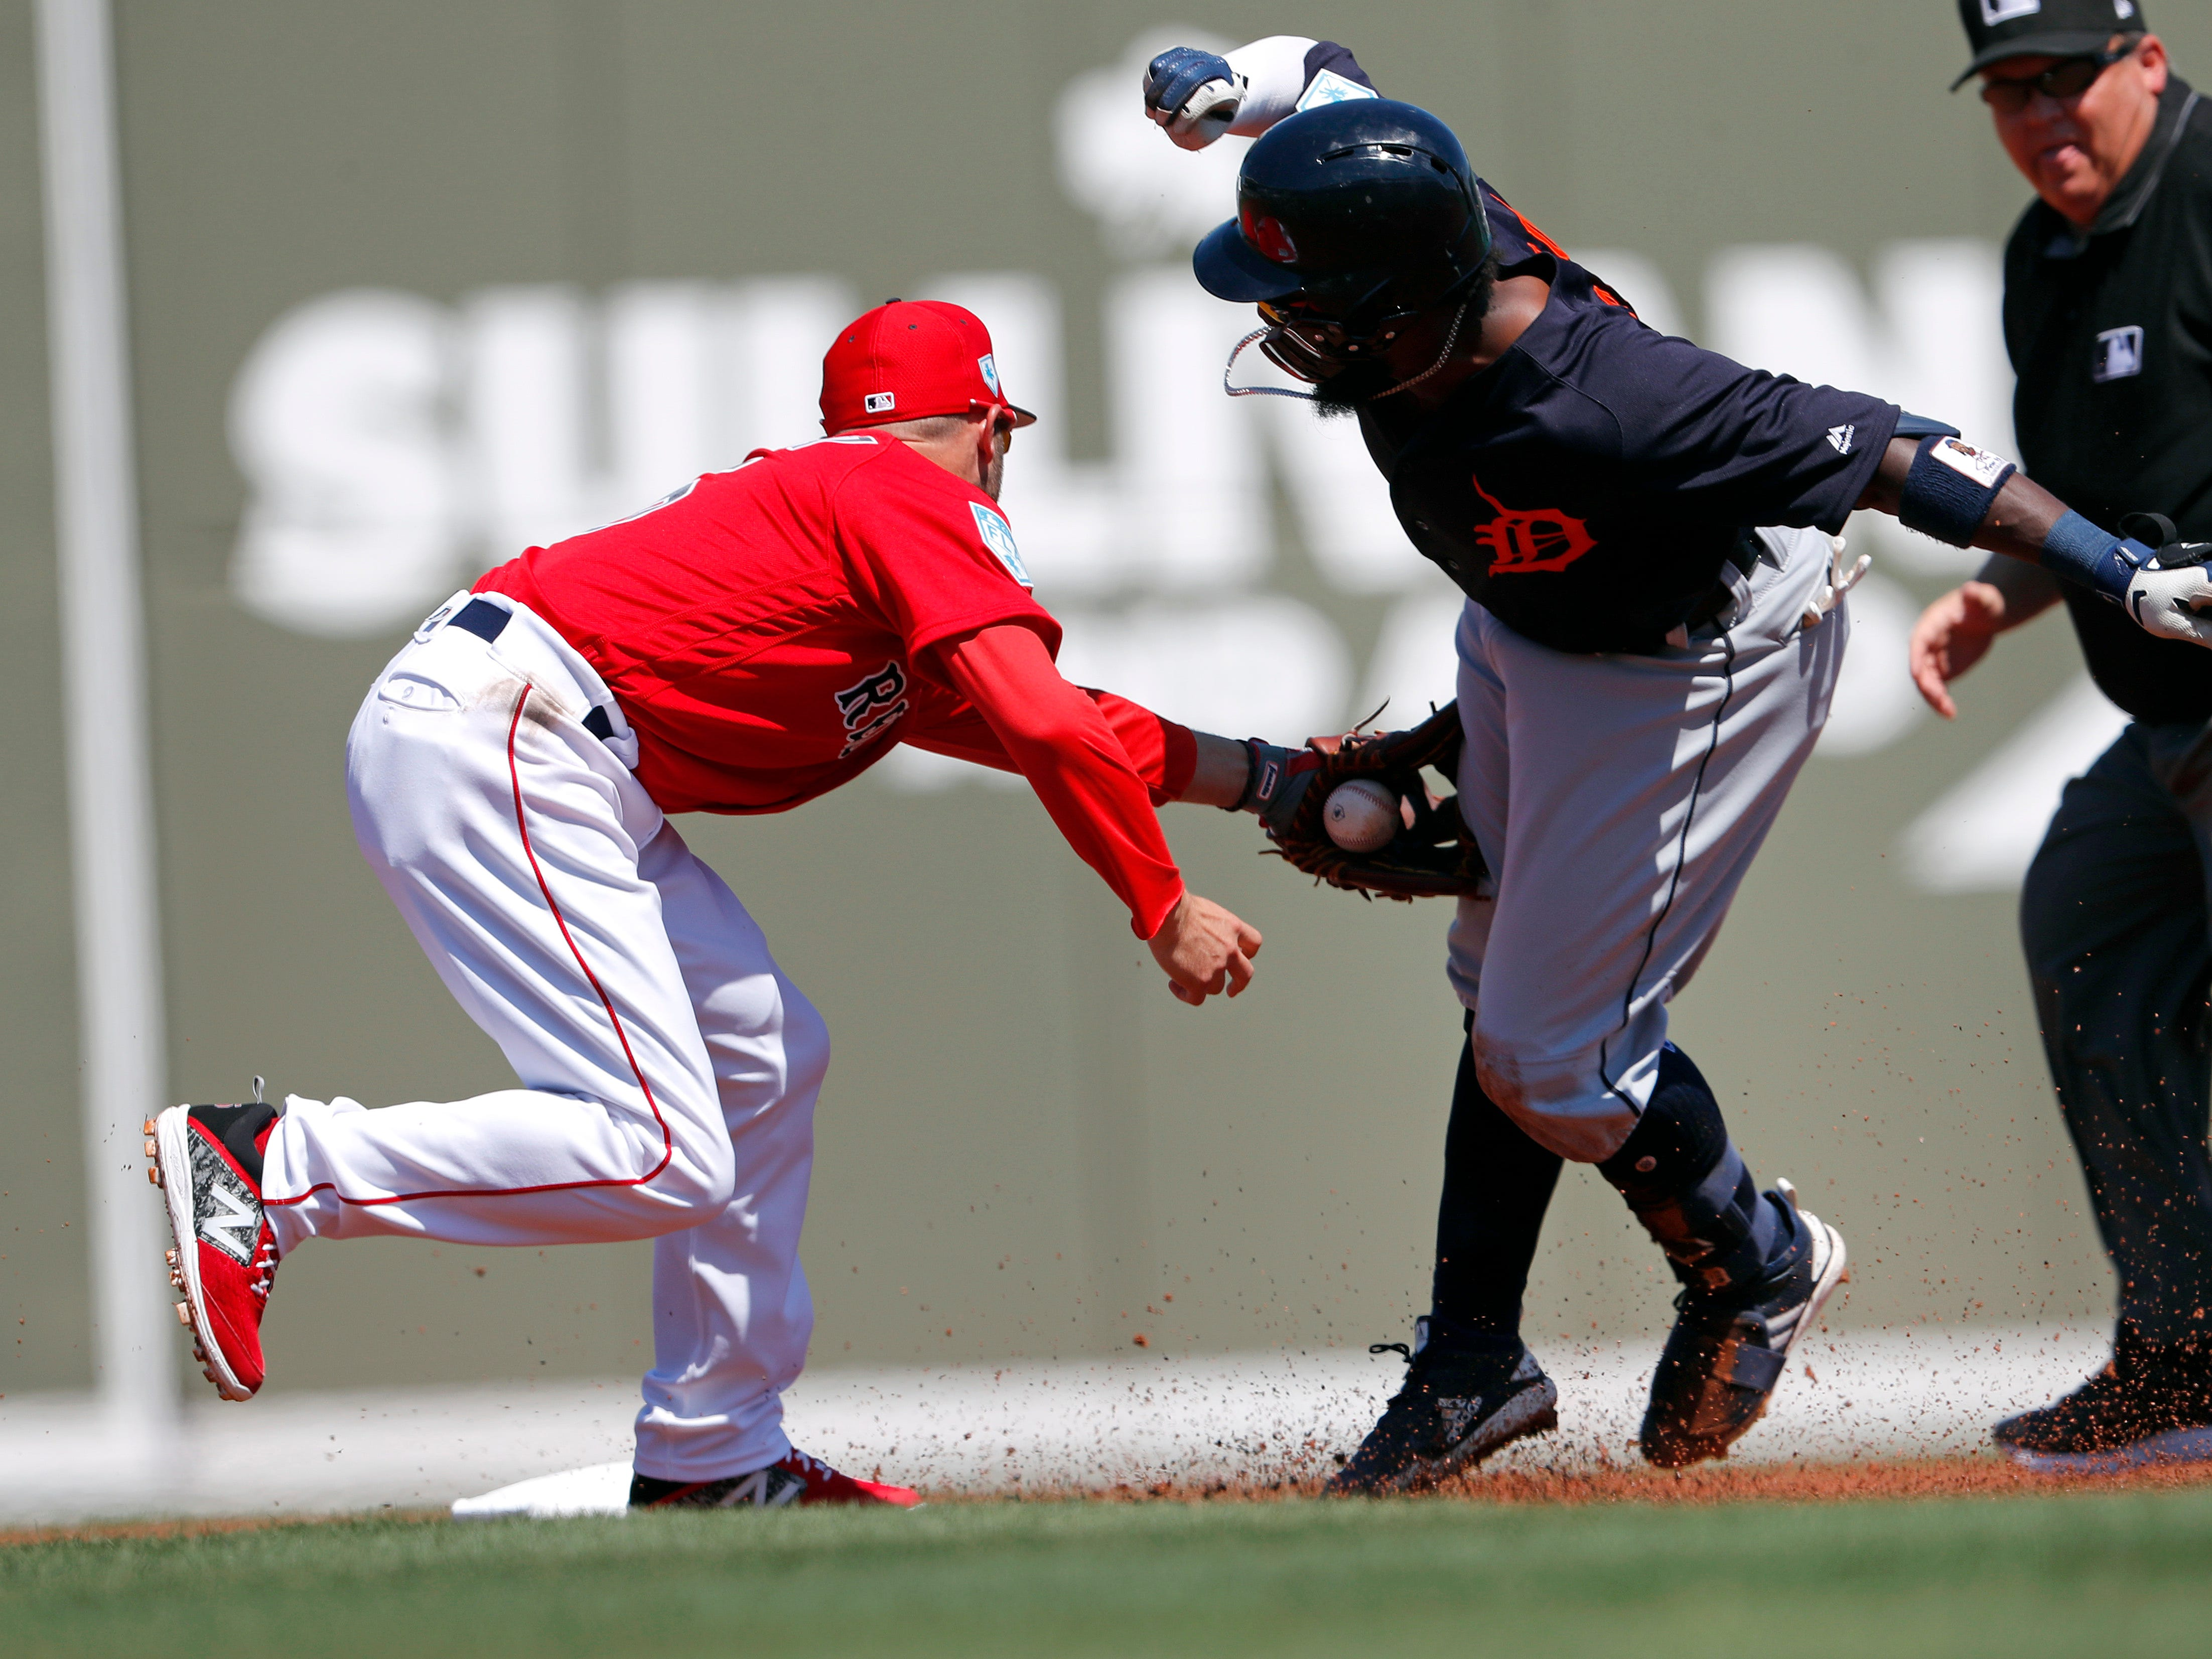 The Tigers' Josh Harrison is tagged out at second by Boston Red Sox second baseman Dustin Pedroia as he tries to stretch a single in the first inning.